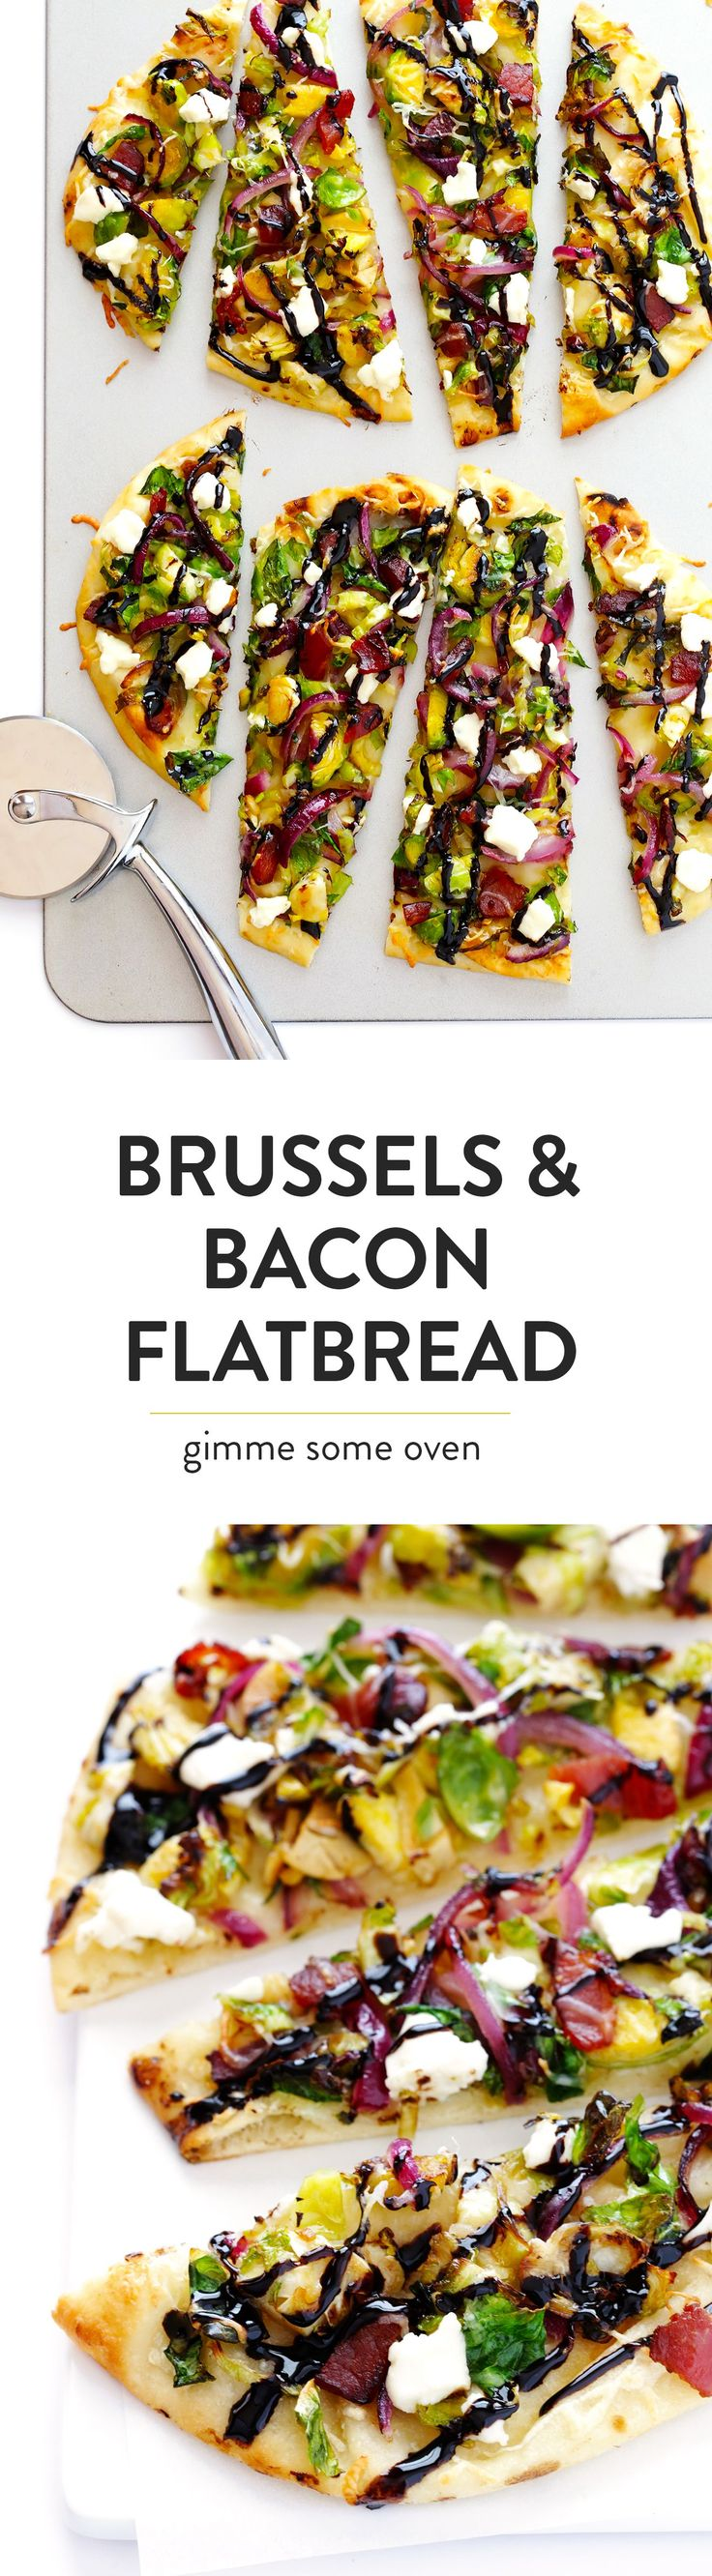 A super-easy and delicious recipe for flatbread pizza, made with Brussels sprouts, bacon, goat cheese, red onion, and a simple balsamic glaze.  Perfect as an appetizer...or main dish! | gimmesomeoven.com